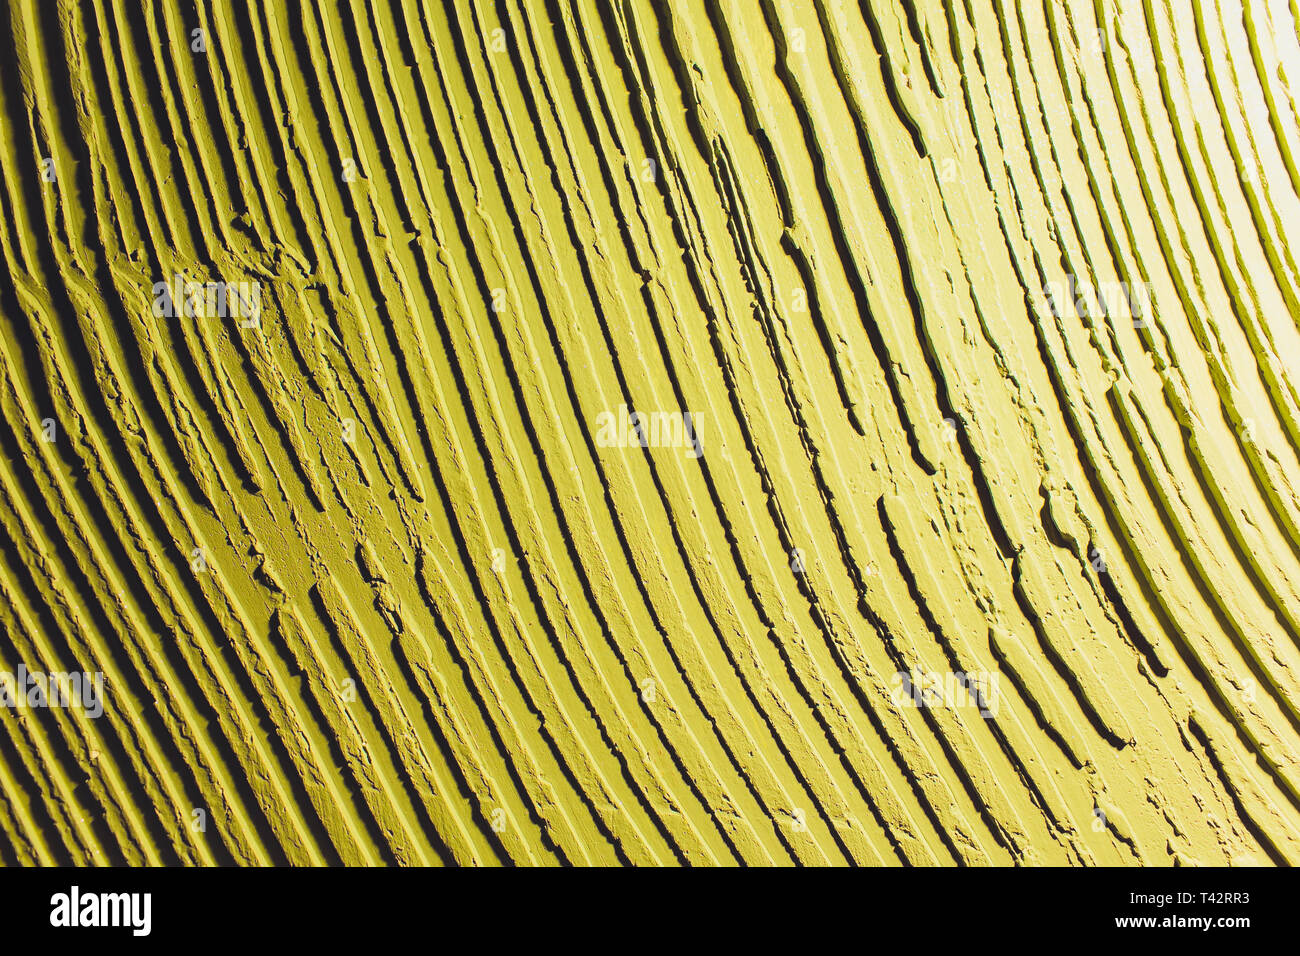 Neon vibrant yellow green grungy wall texture. More of this motif more backgrounds in my port. - Stock Image